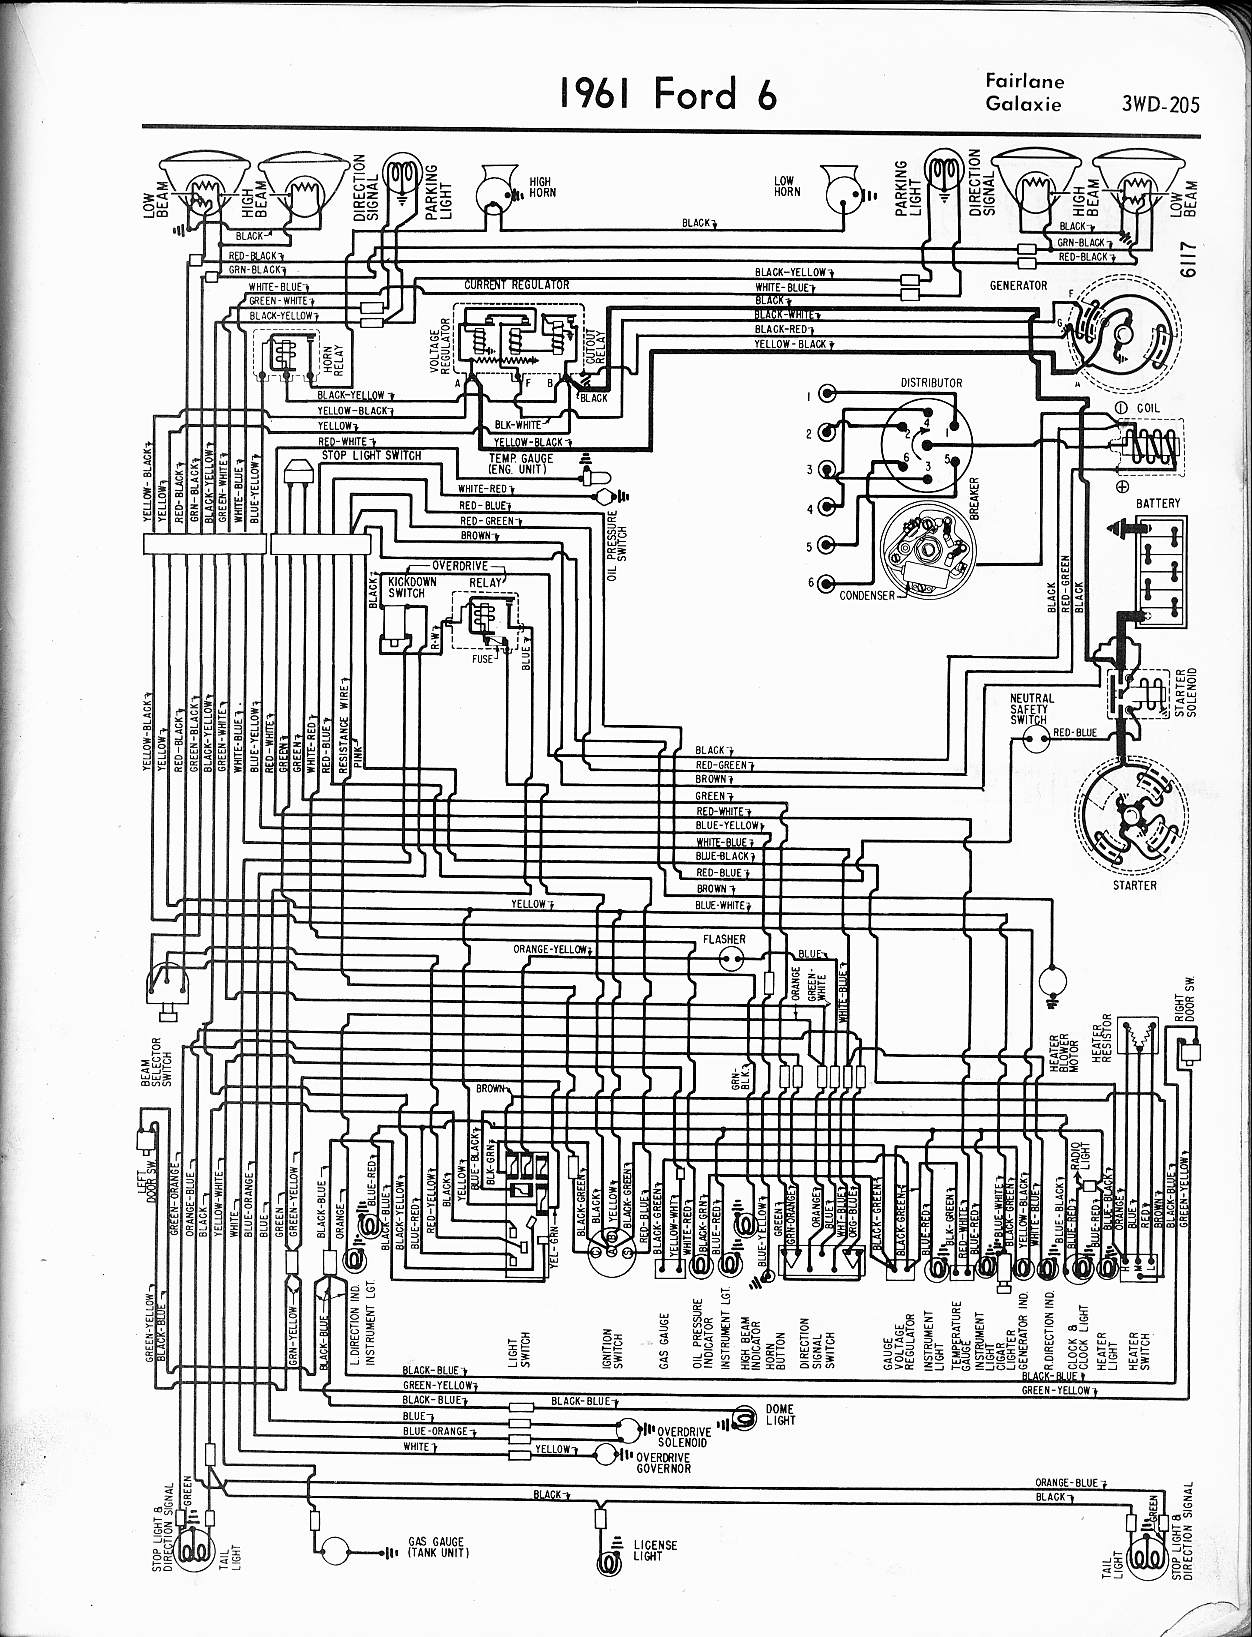 Ford F600 Truck Wiring Diagrams Diy Enthusiasts Diagram 61 67 Econoline For Light Switch U2022 Rh Prestonfarmmotors Co 1976 1973 F100